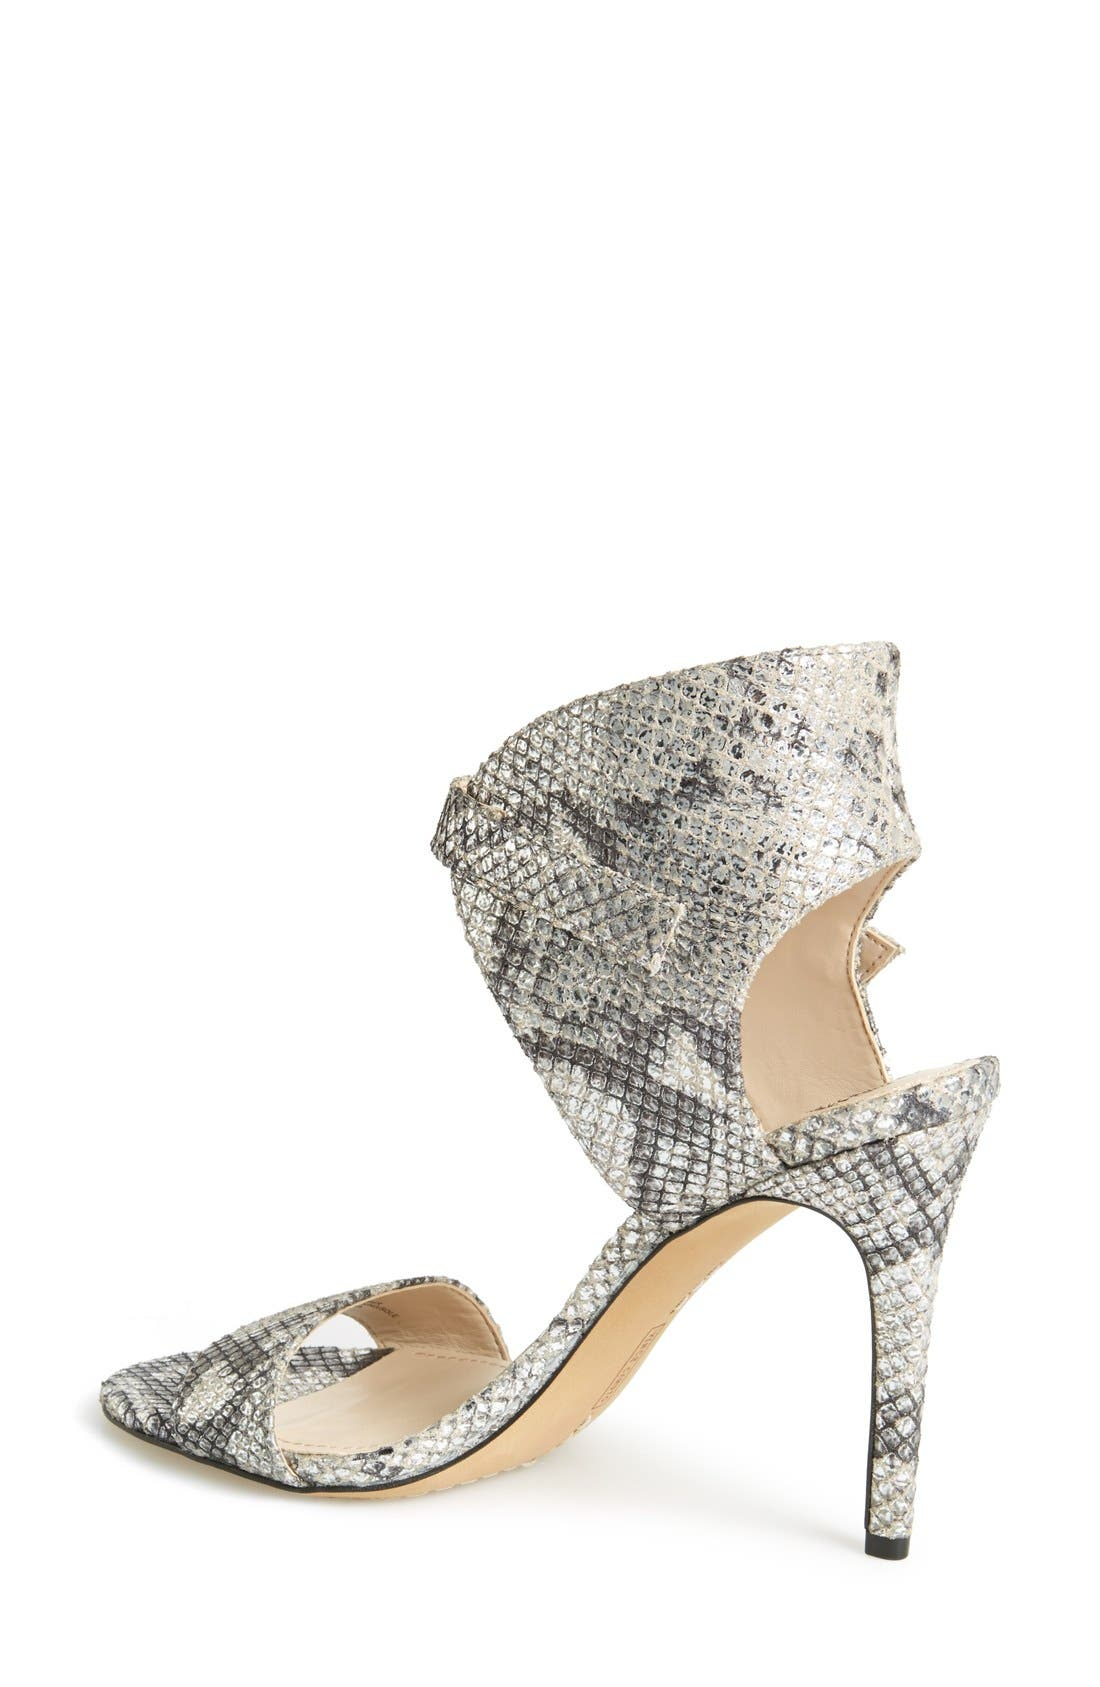 Alternate Image 2  - Vince Camuto 'Tarma' Ankle Cuff Sandal (Women)